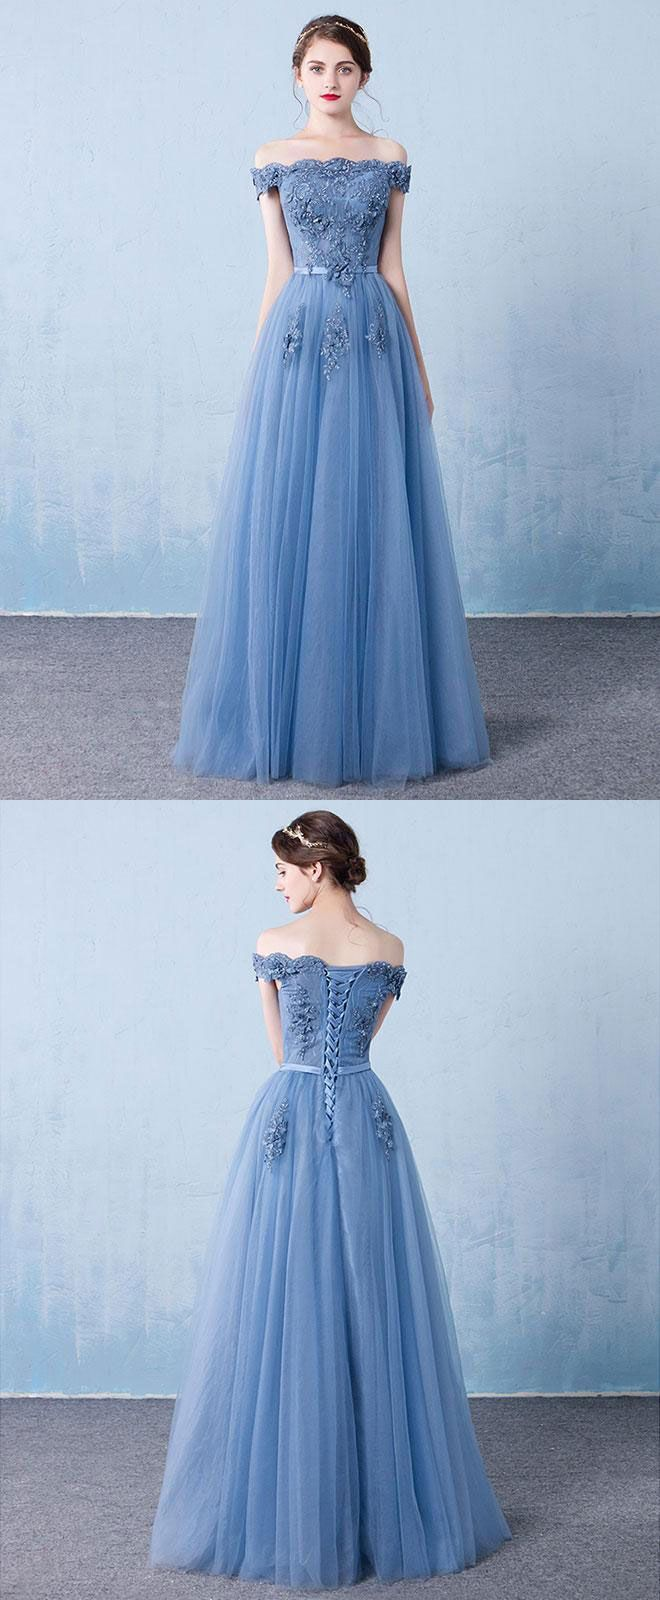 32ccd95512 Blue tulle lace off shoulder long prom dress